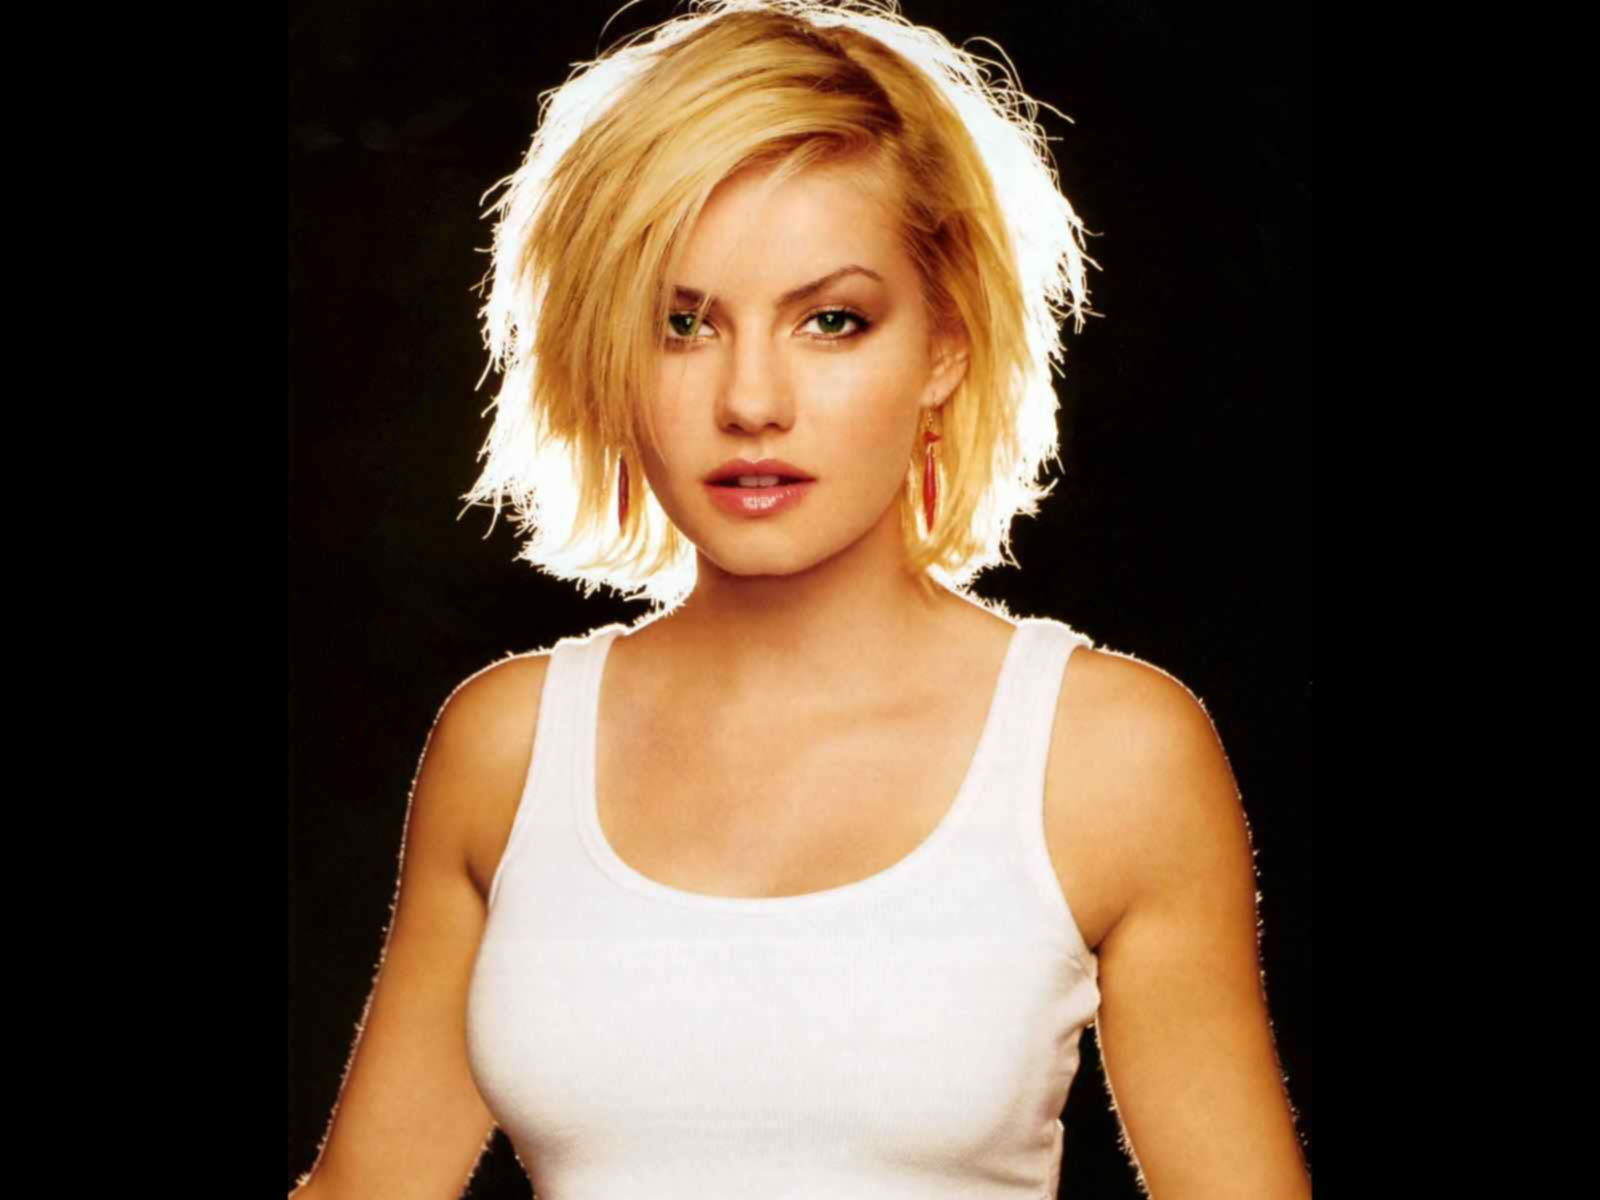 Elisha Cuthbert Wallpapers HD free Download